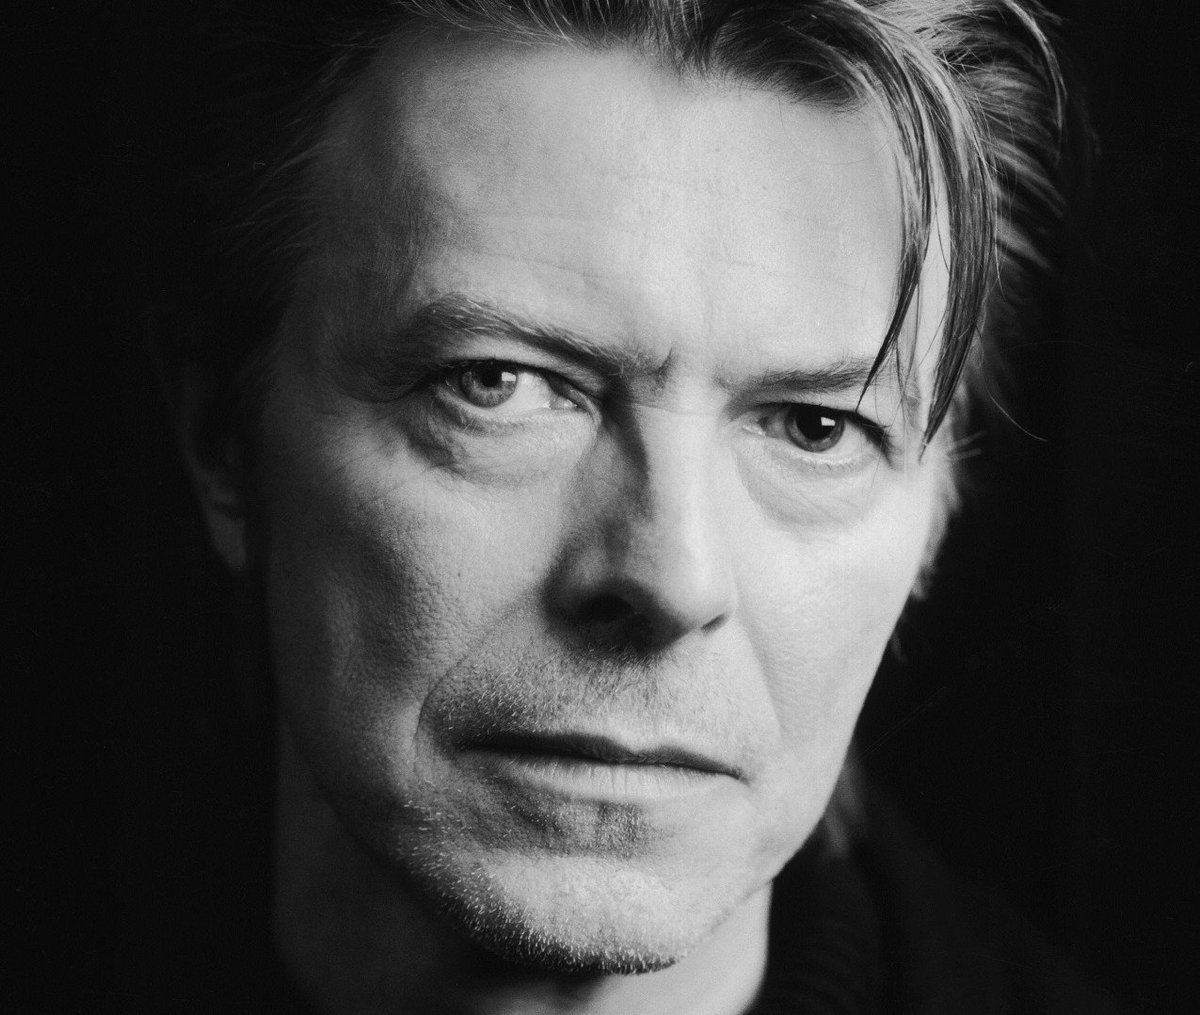 これはすぐに信じるわけにはいかない。。。。。 RT @dark_shark: Words cannot express: RIP David Bowie https://t.co/cRUop3Jhh5 https://t.co/SF80ZtzK5X